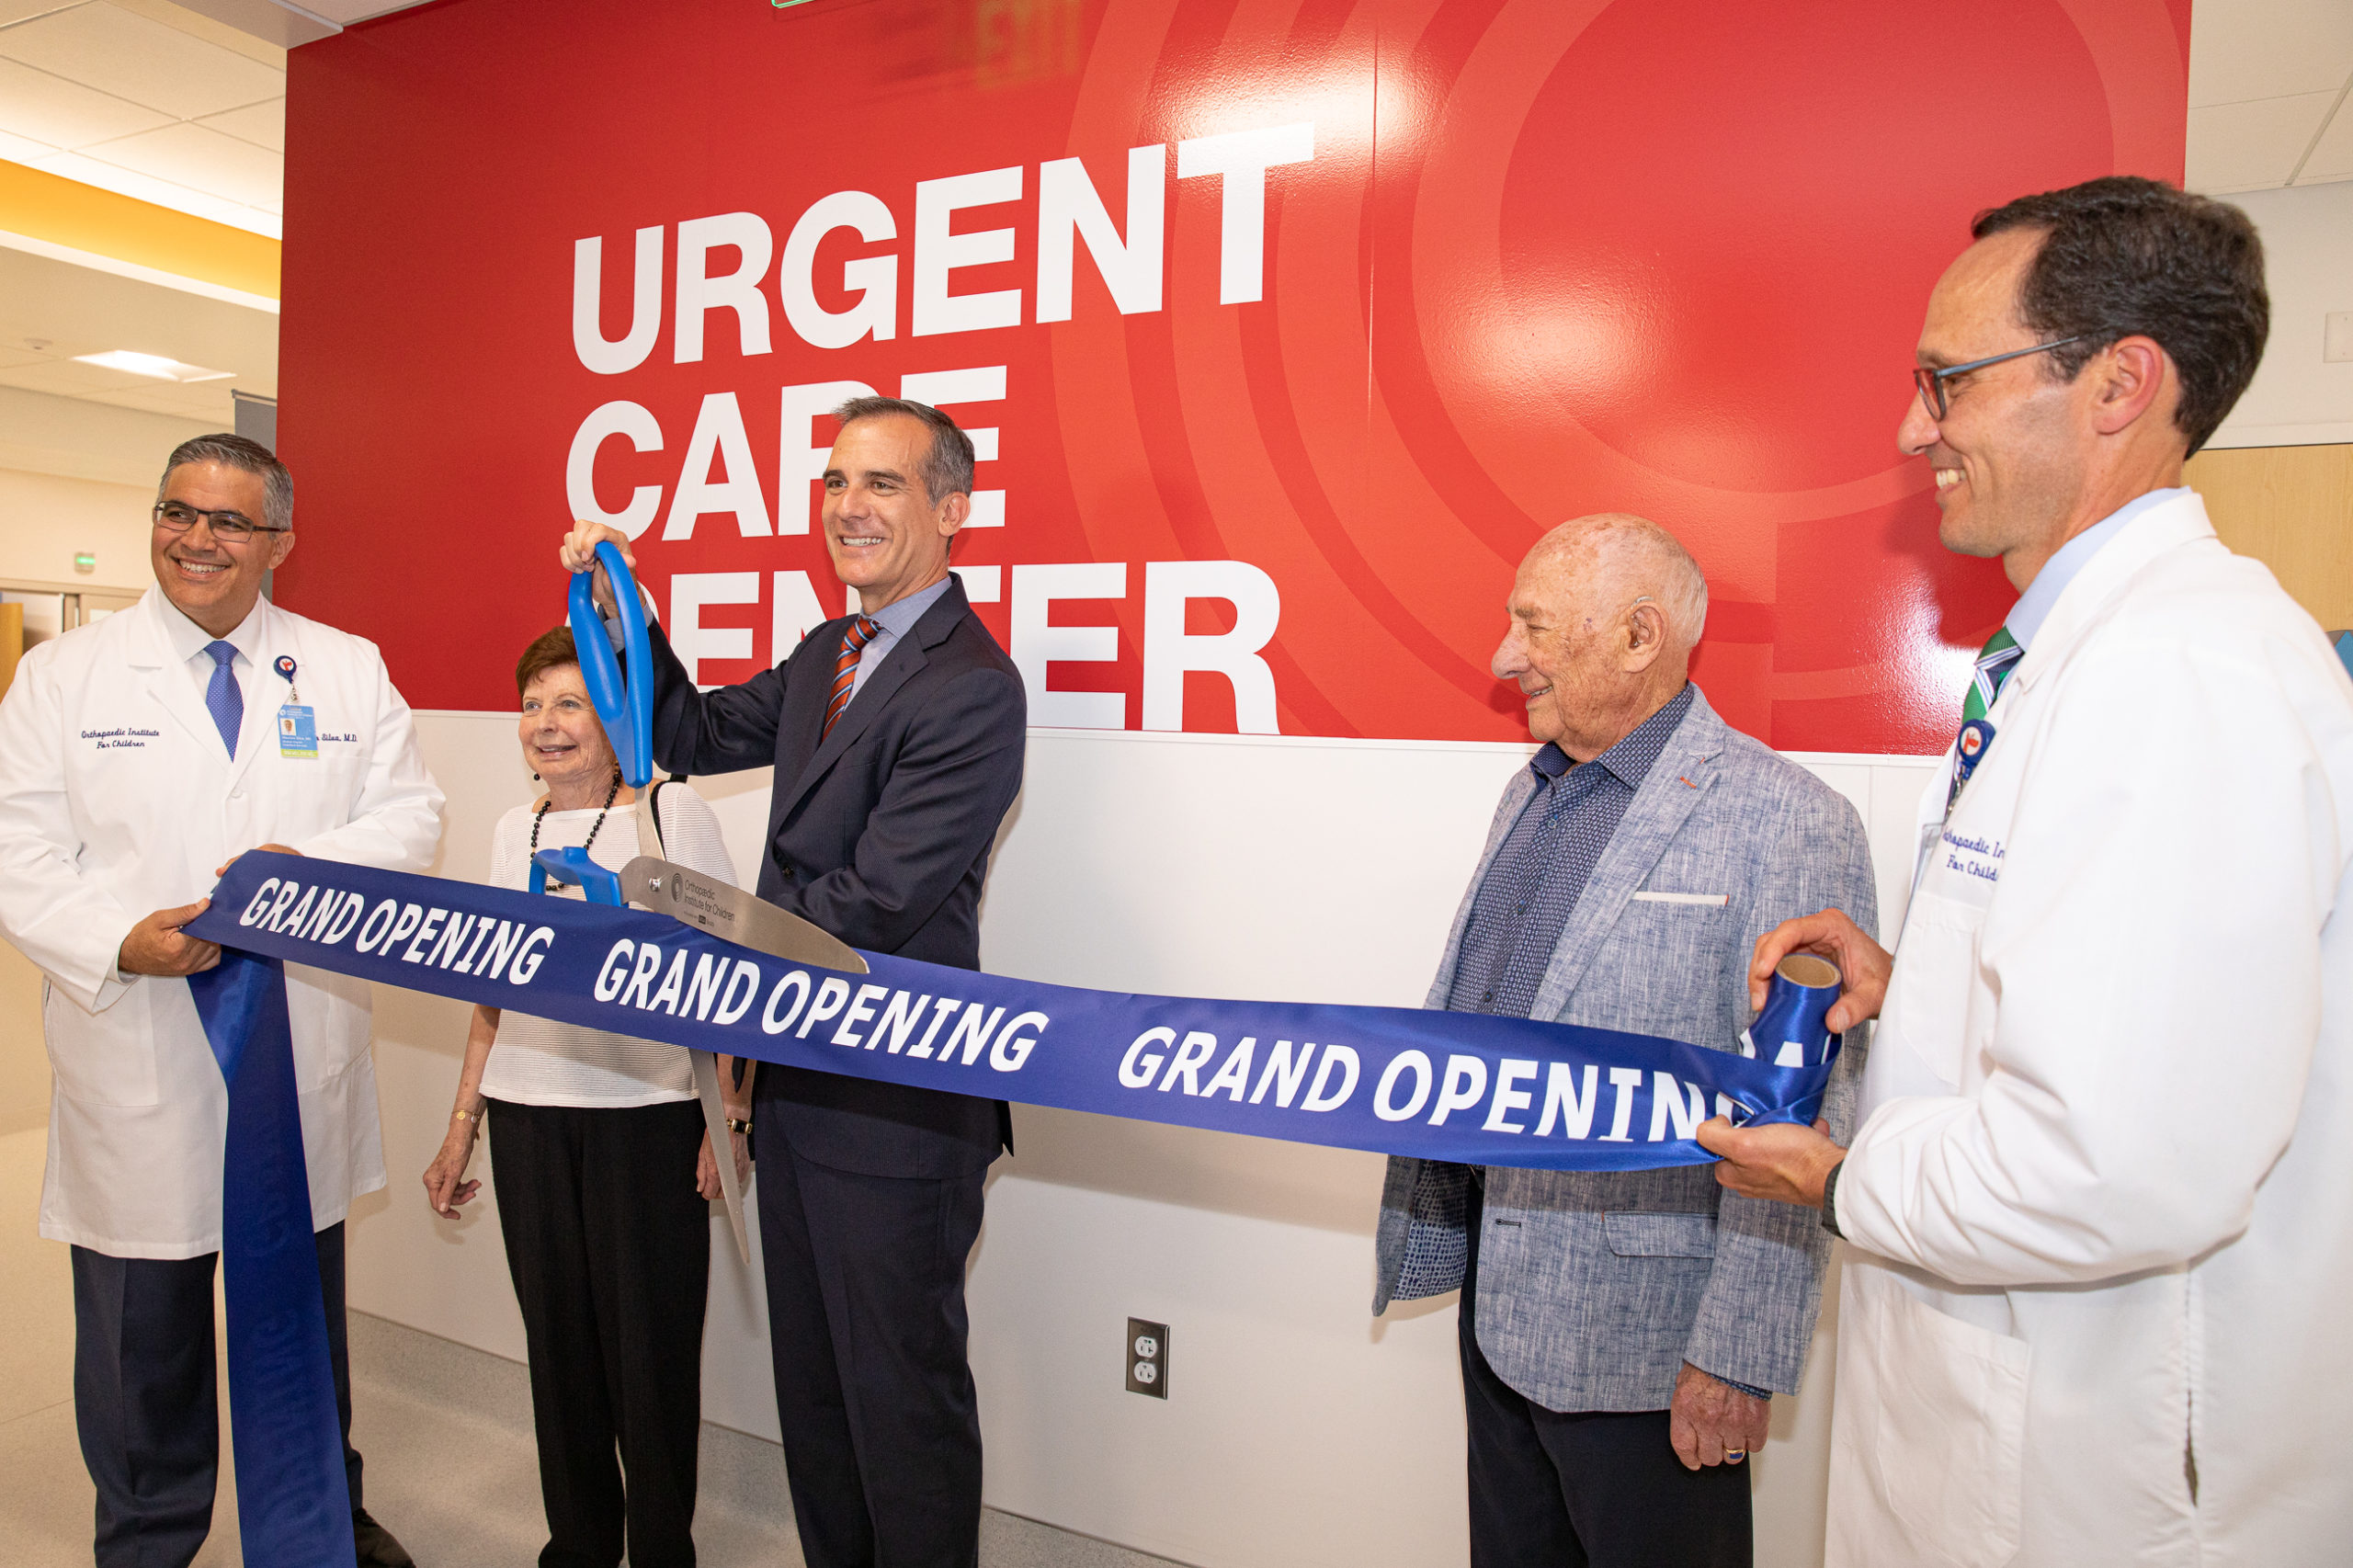 OIC_news_Urgent_Care_Ribbon_Cutting